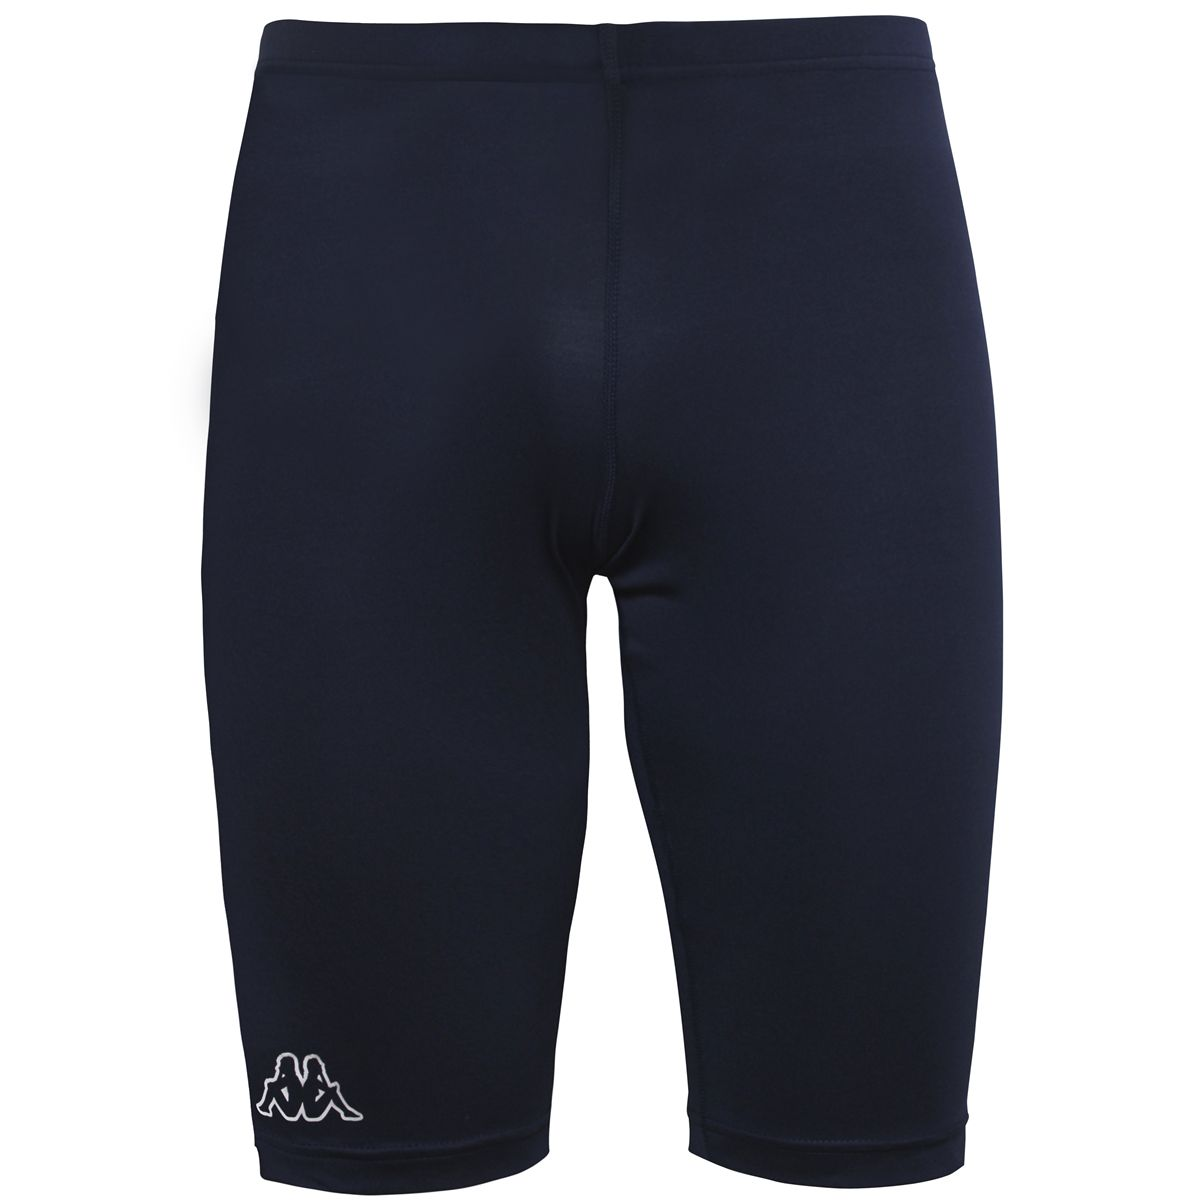 Kappa Mid Underpants underwear Functional Man